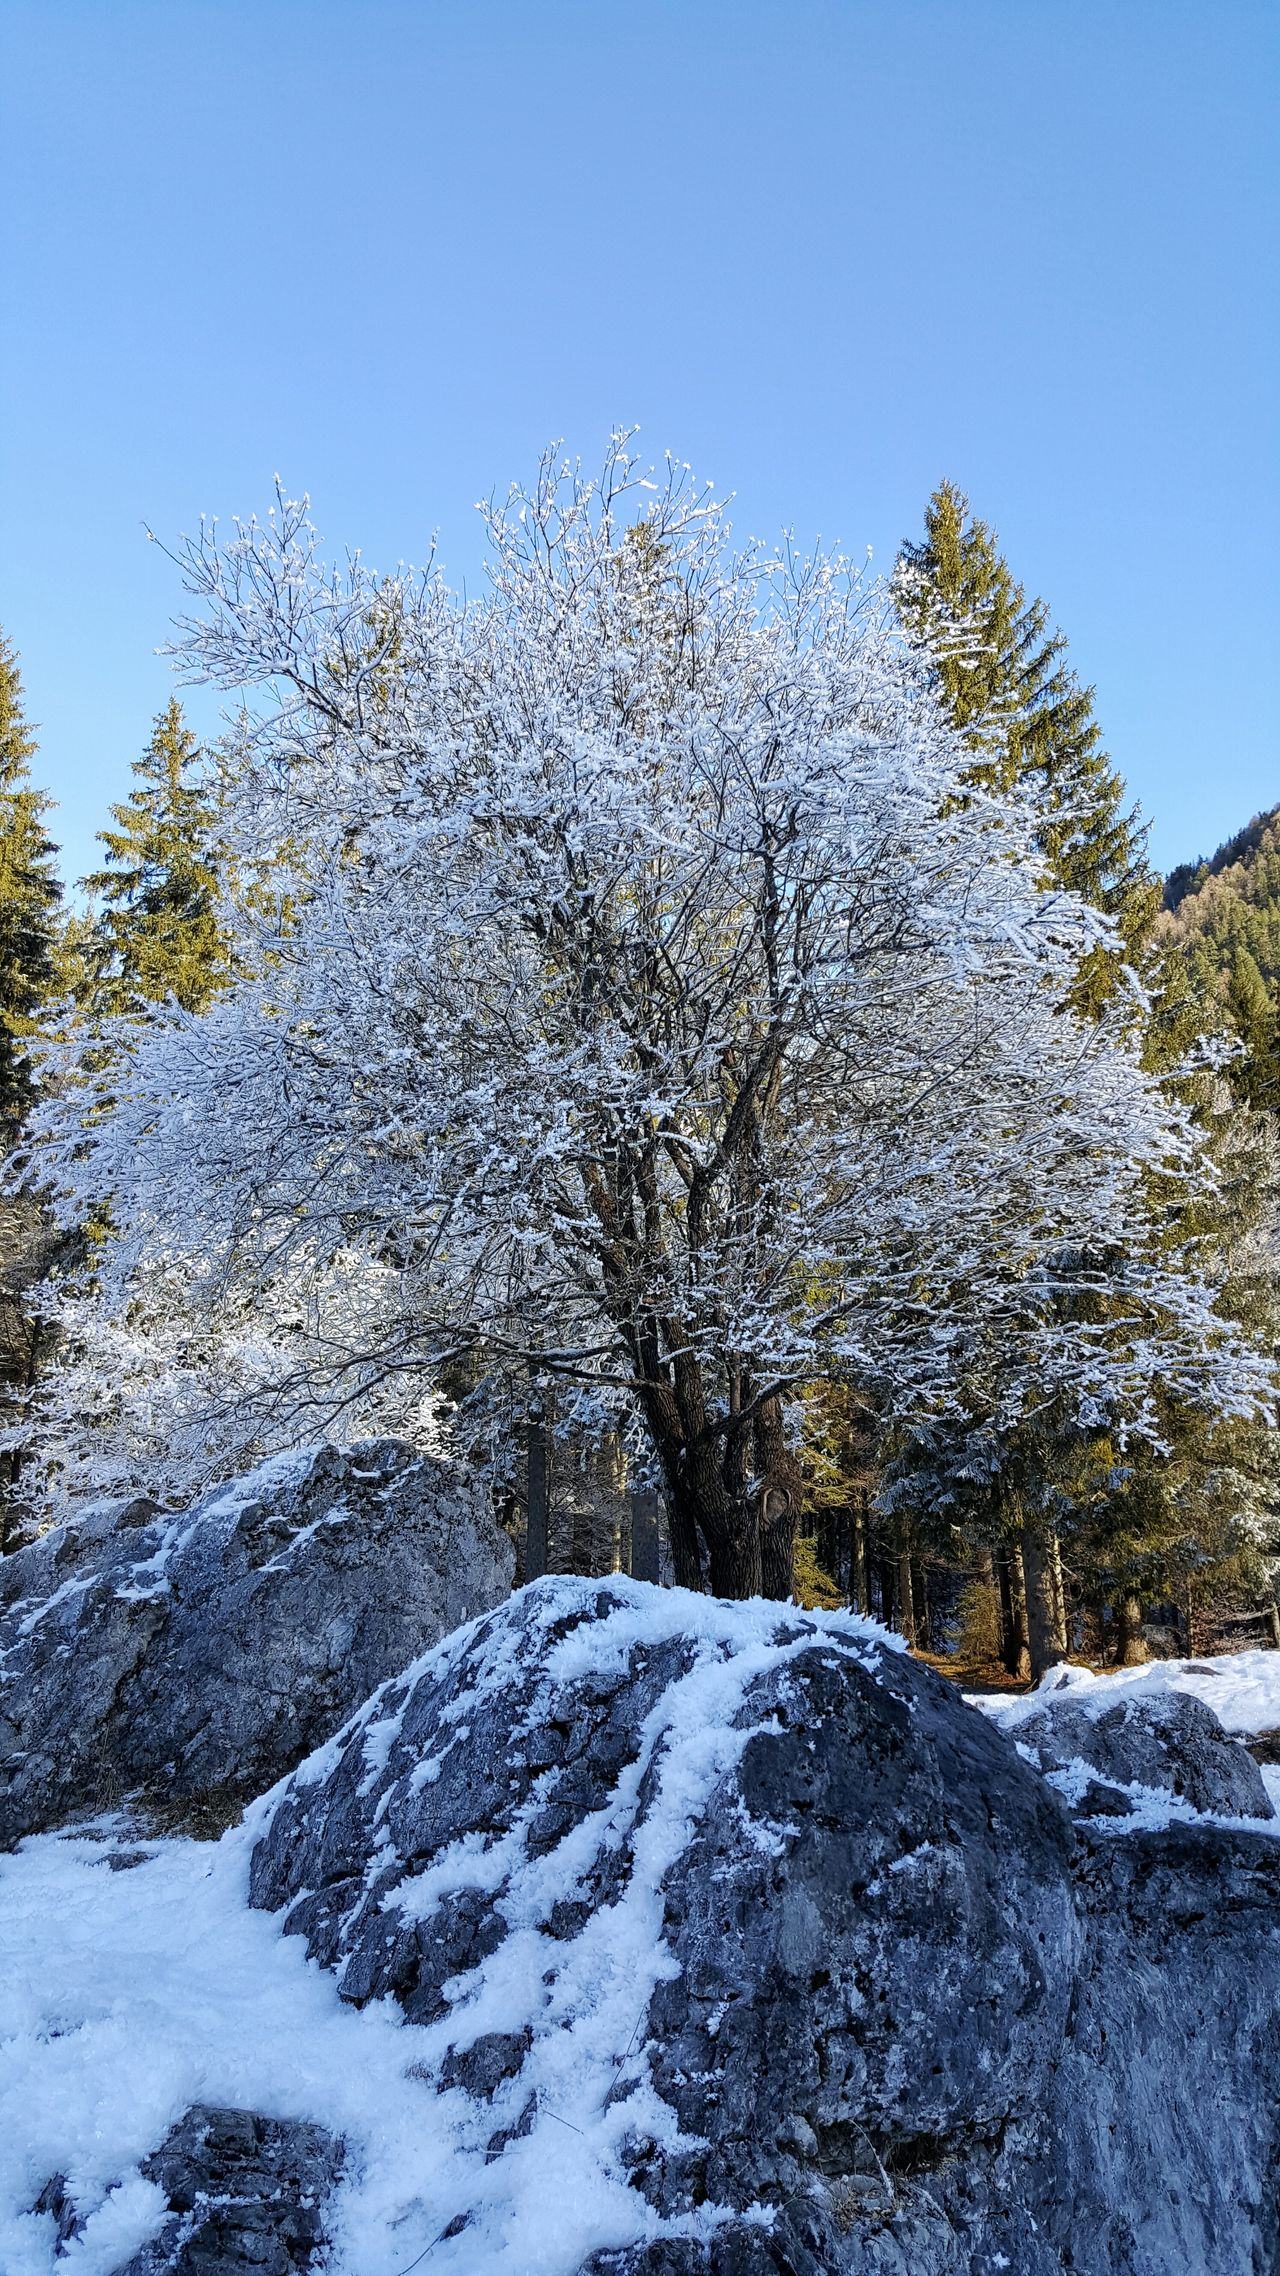 Tree Tranquility Tranquil Scene Trees Magical Trees Snow Snowcapped White Green Blue Grey No People Nature Winter Cold Cold Temperature Sky Clear Sky Mountains Woods Outdoors Friuli Venezia Giulia Branches Ice It's Cold Outside